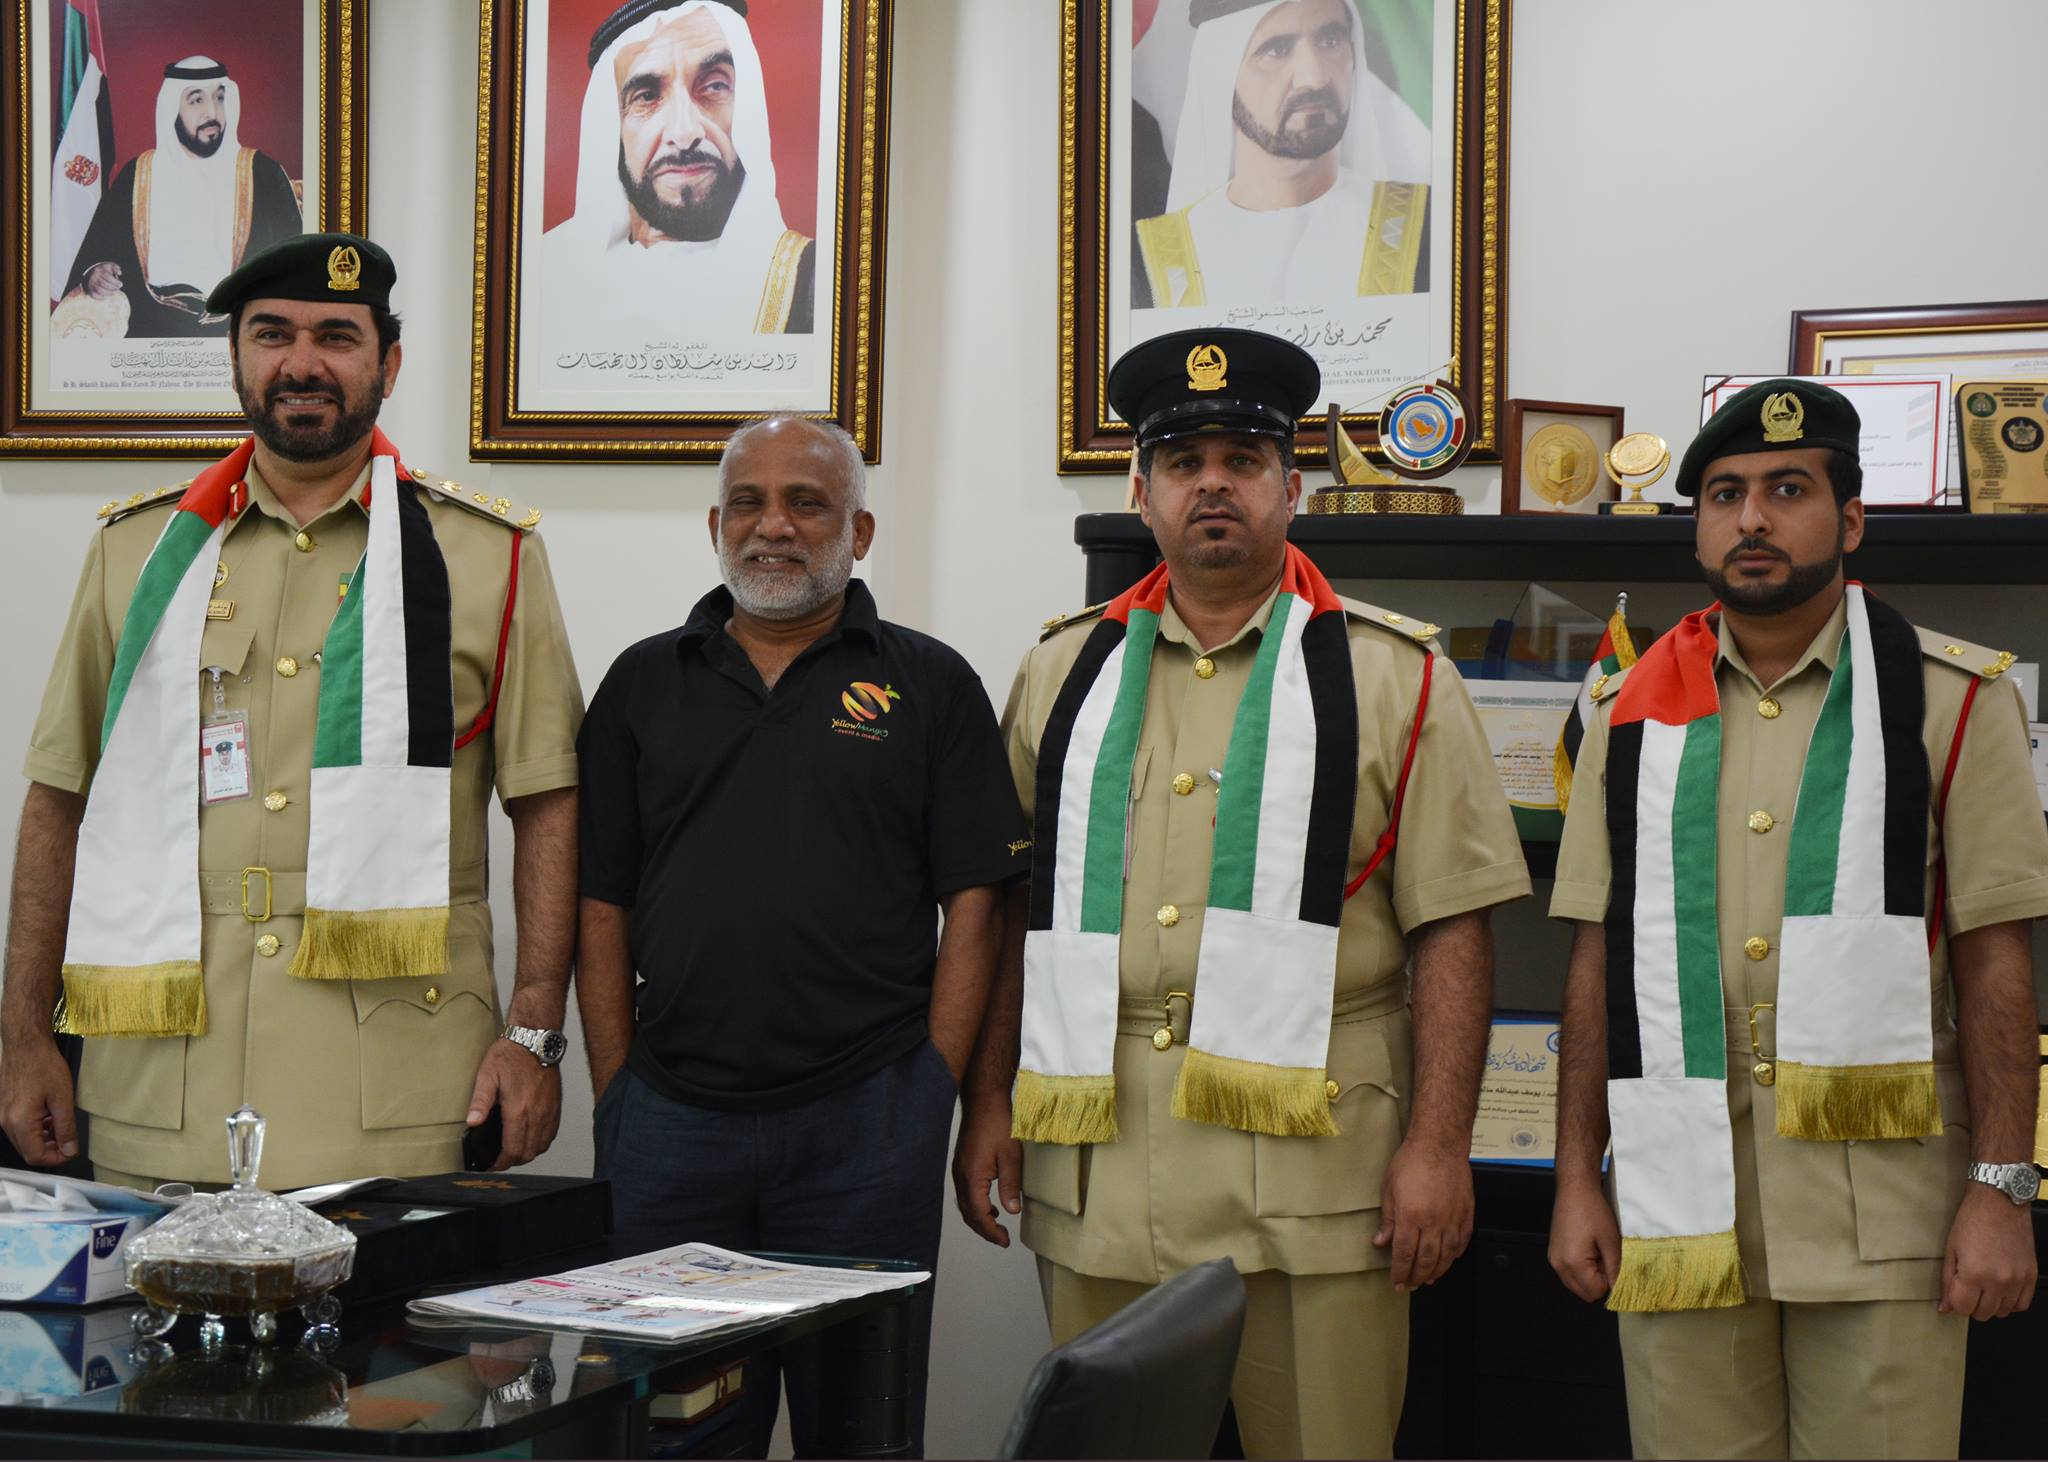 Well respected in the community, the prominent social worker supported various community activities of Dubai Police and the Indian Consulate in Dubai. Phot Courtesy: Nandi Nazri/ FB